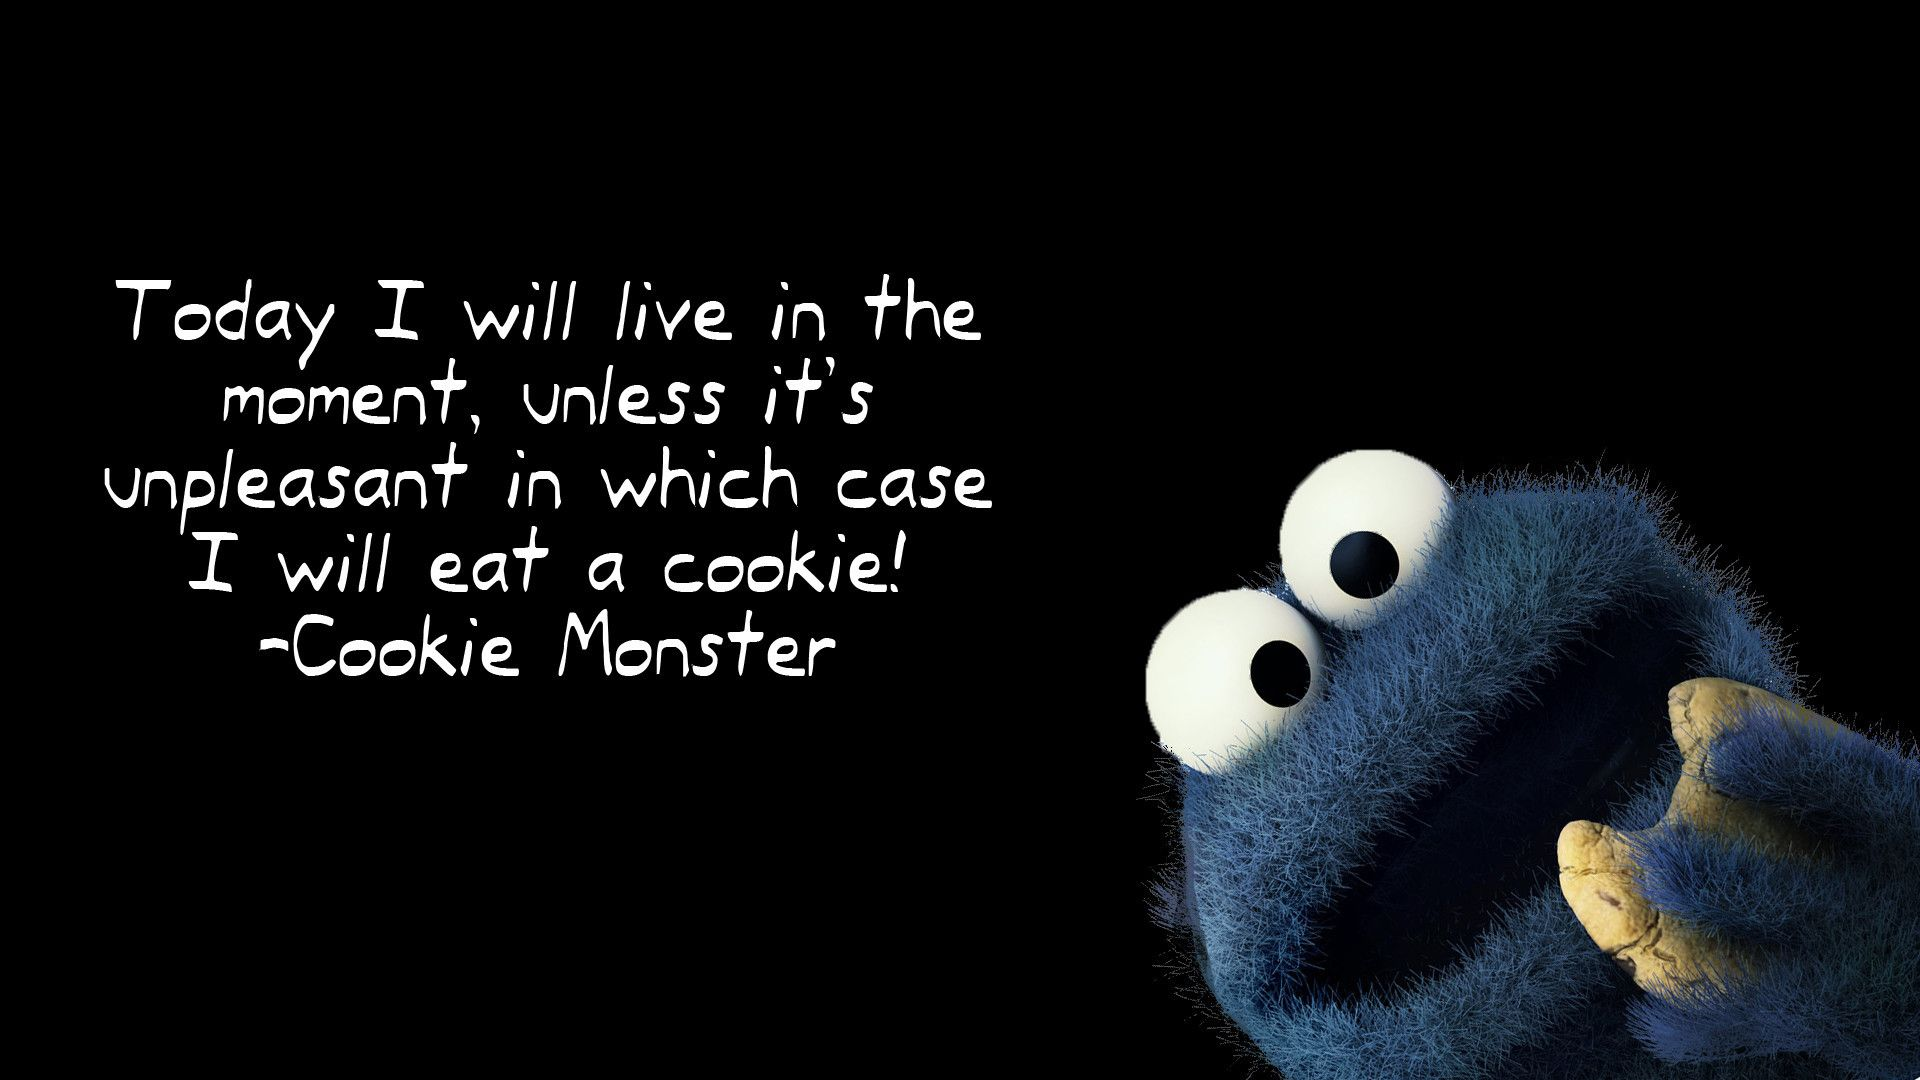 Cookie monster quote hd wallpaper free hd wallpaper download cookie monster quote hd wallpaper free hd wallpaper download cookie monster quote hd wallpaper free voltagebd Image collections